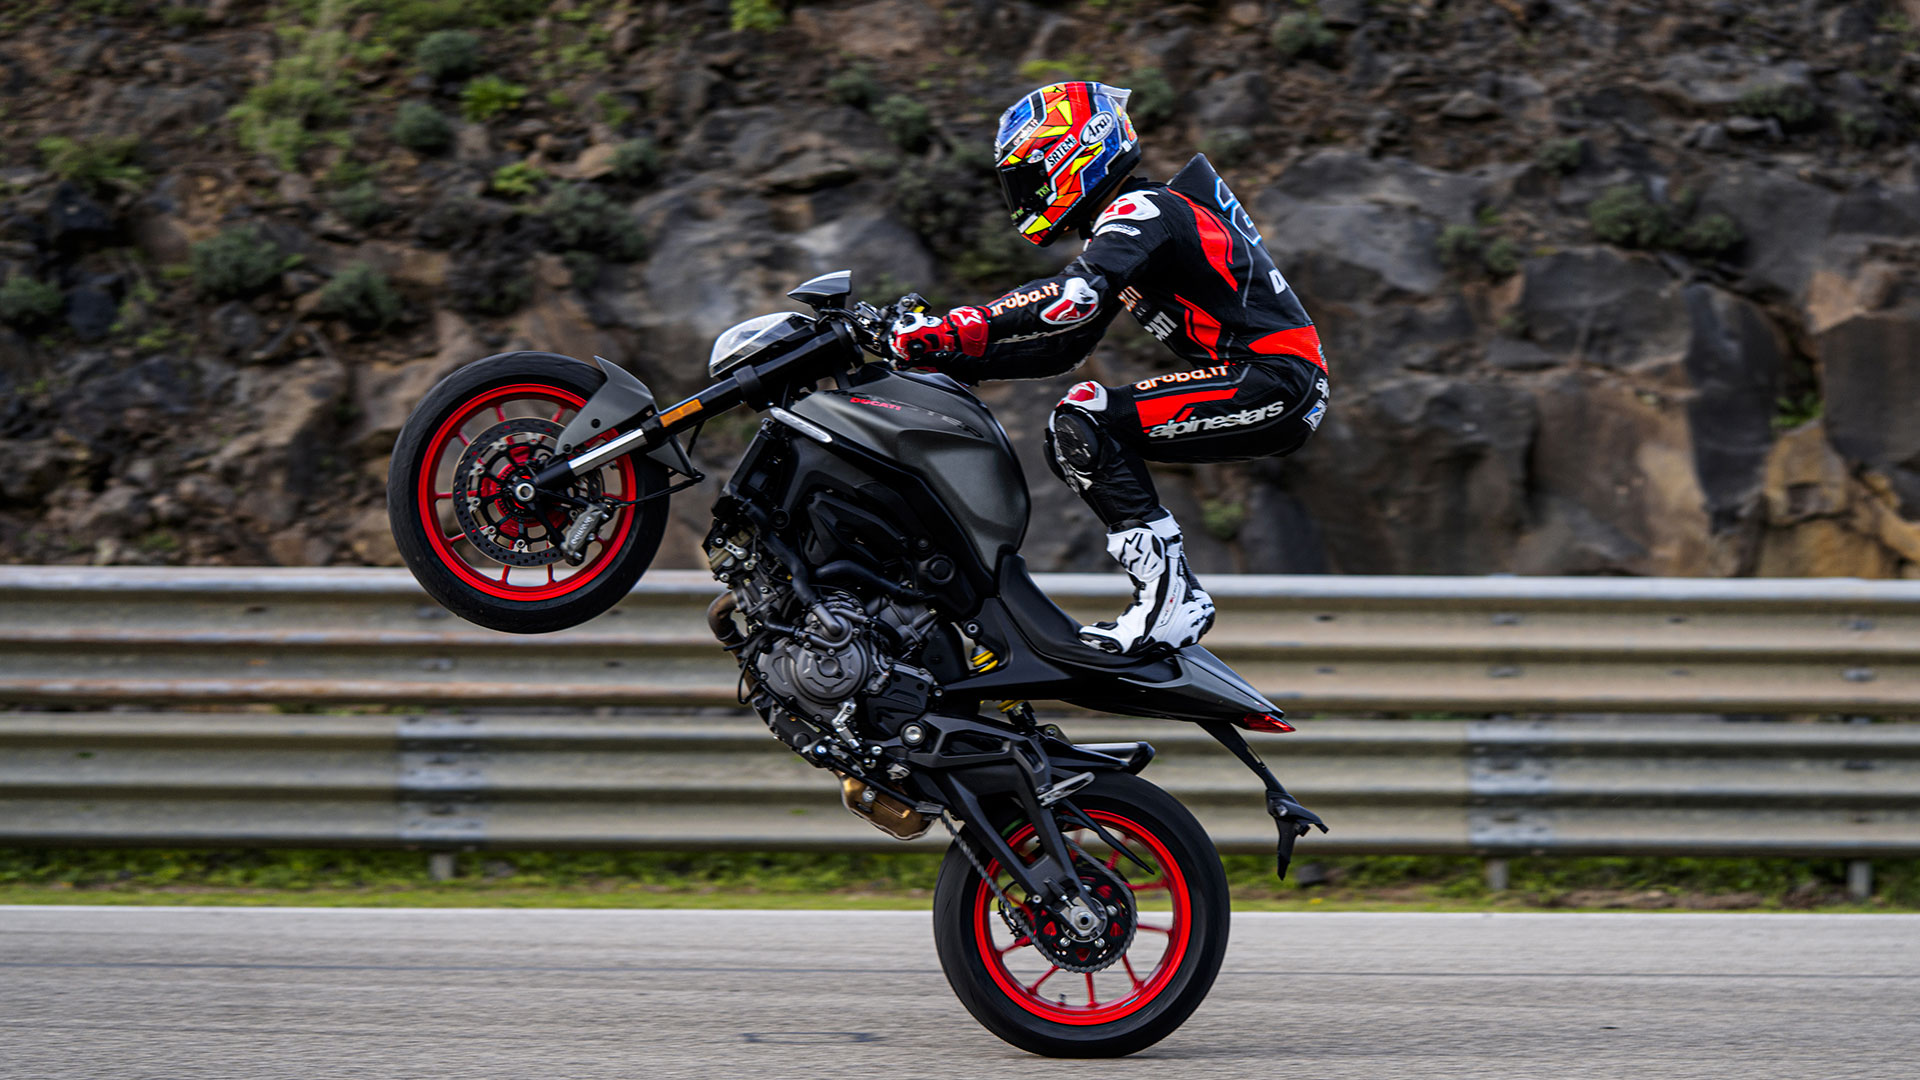 nuova-ducati-monster